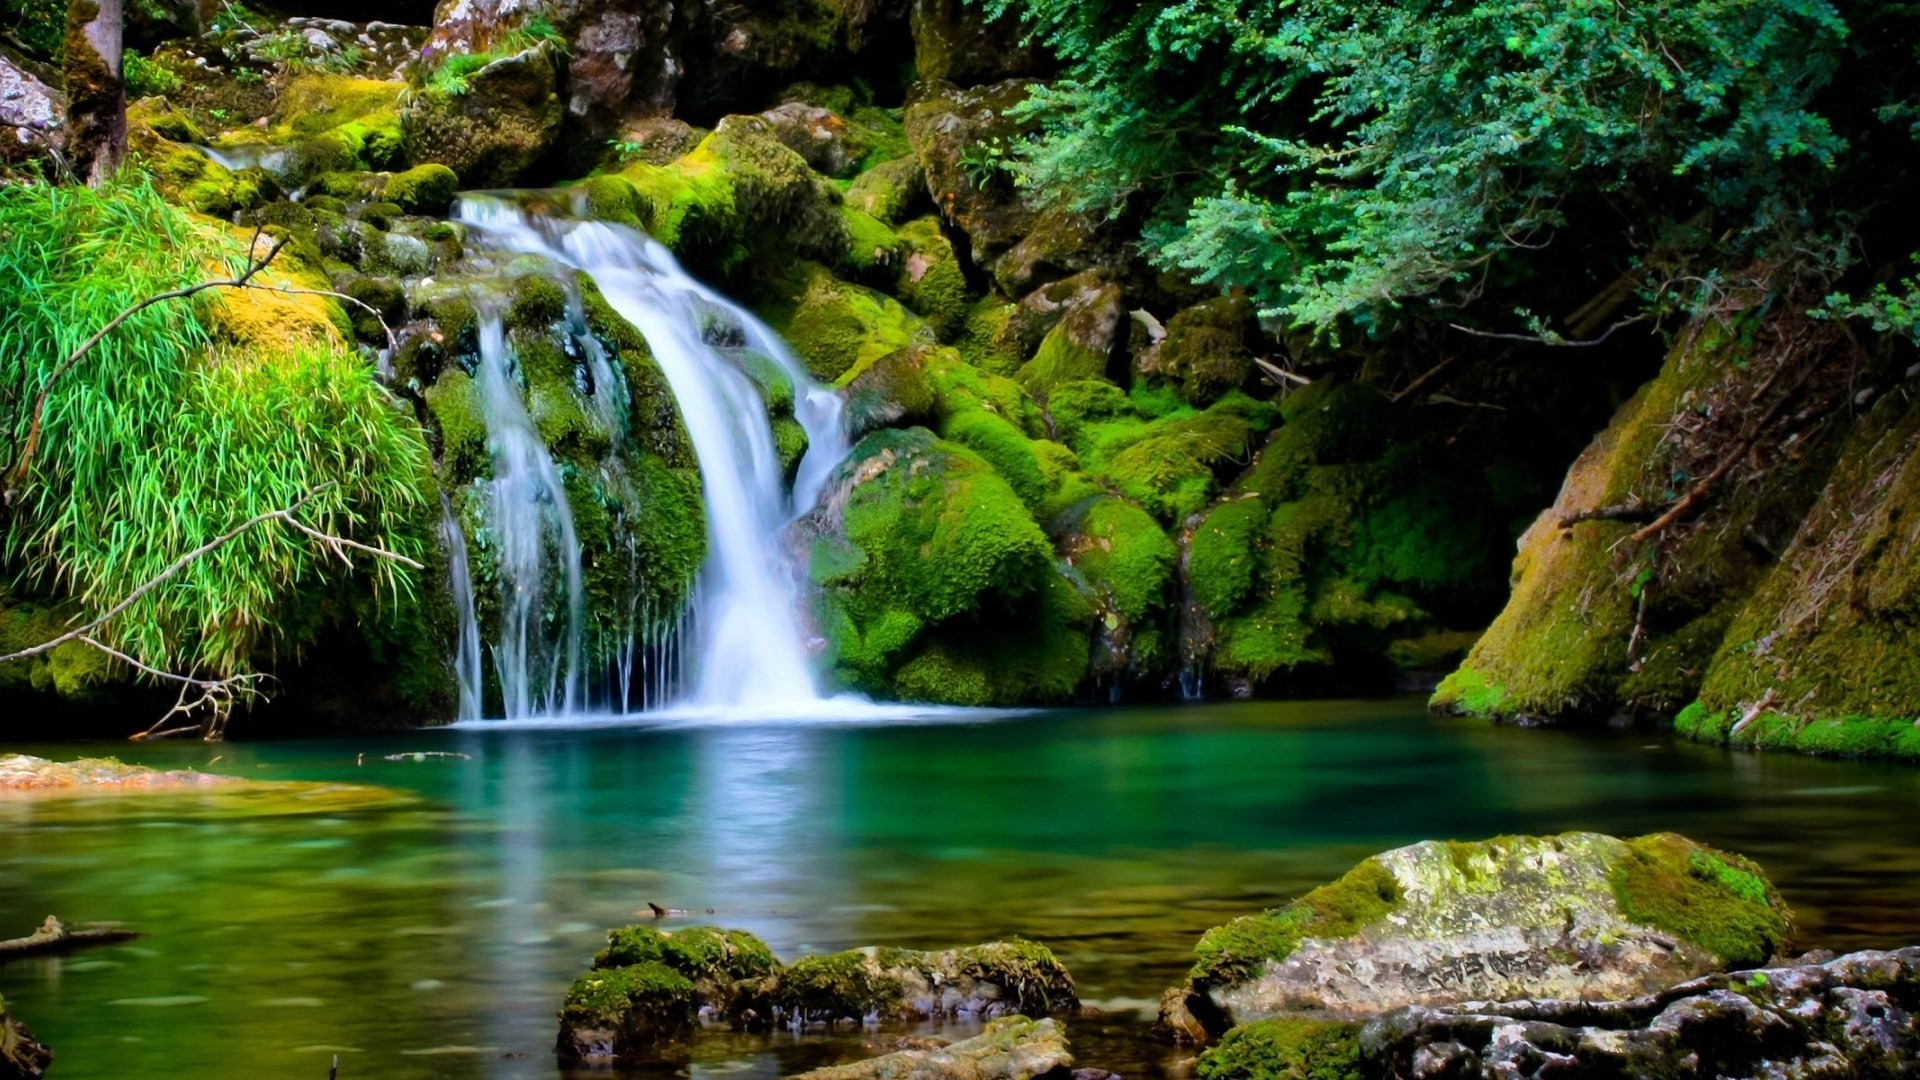 Res: 1920x1080, Latest Hd Best Nature Wallpapers Widescreen High Quality For Your Desktop  And Smartphones On Iphone